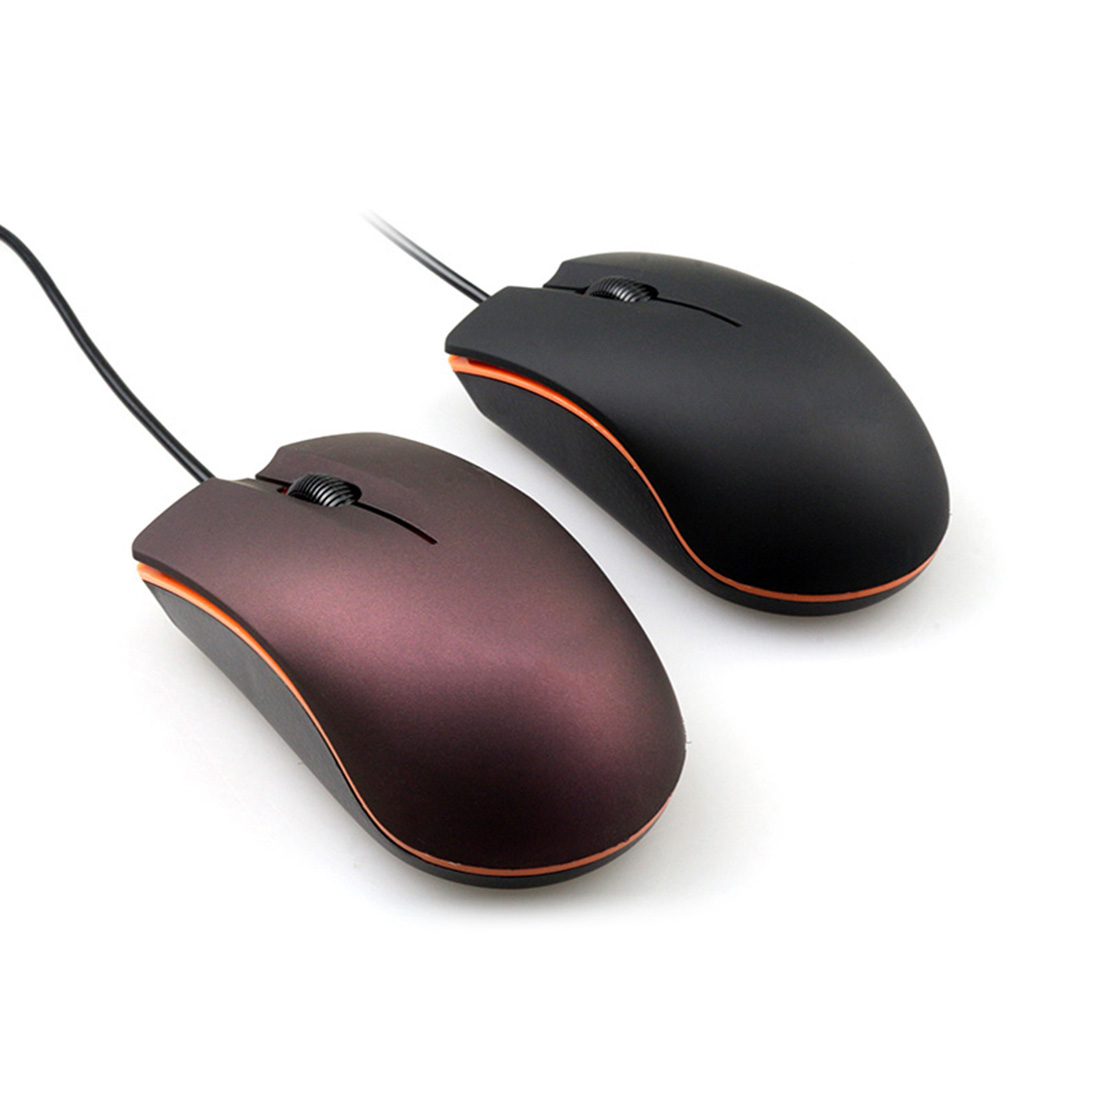 NOYOKERE New Arrival Mini Cute Wired Mouse USB 2.0 Pro Office Mouse Optical Mice For Computer PC Mini Pro Gaming Mouse